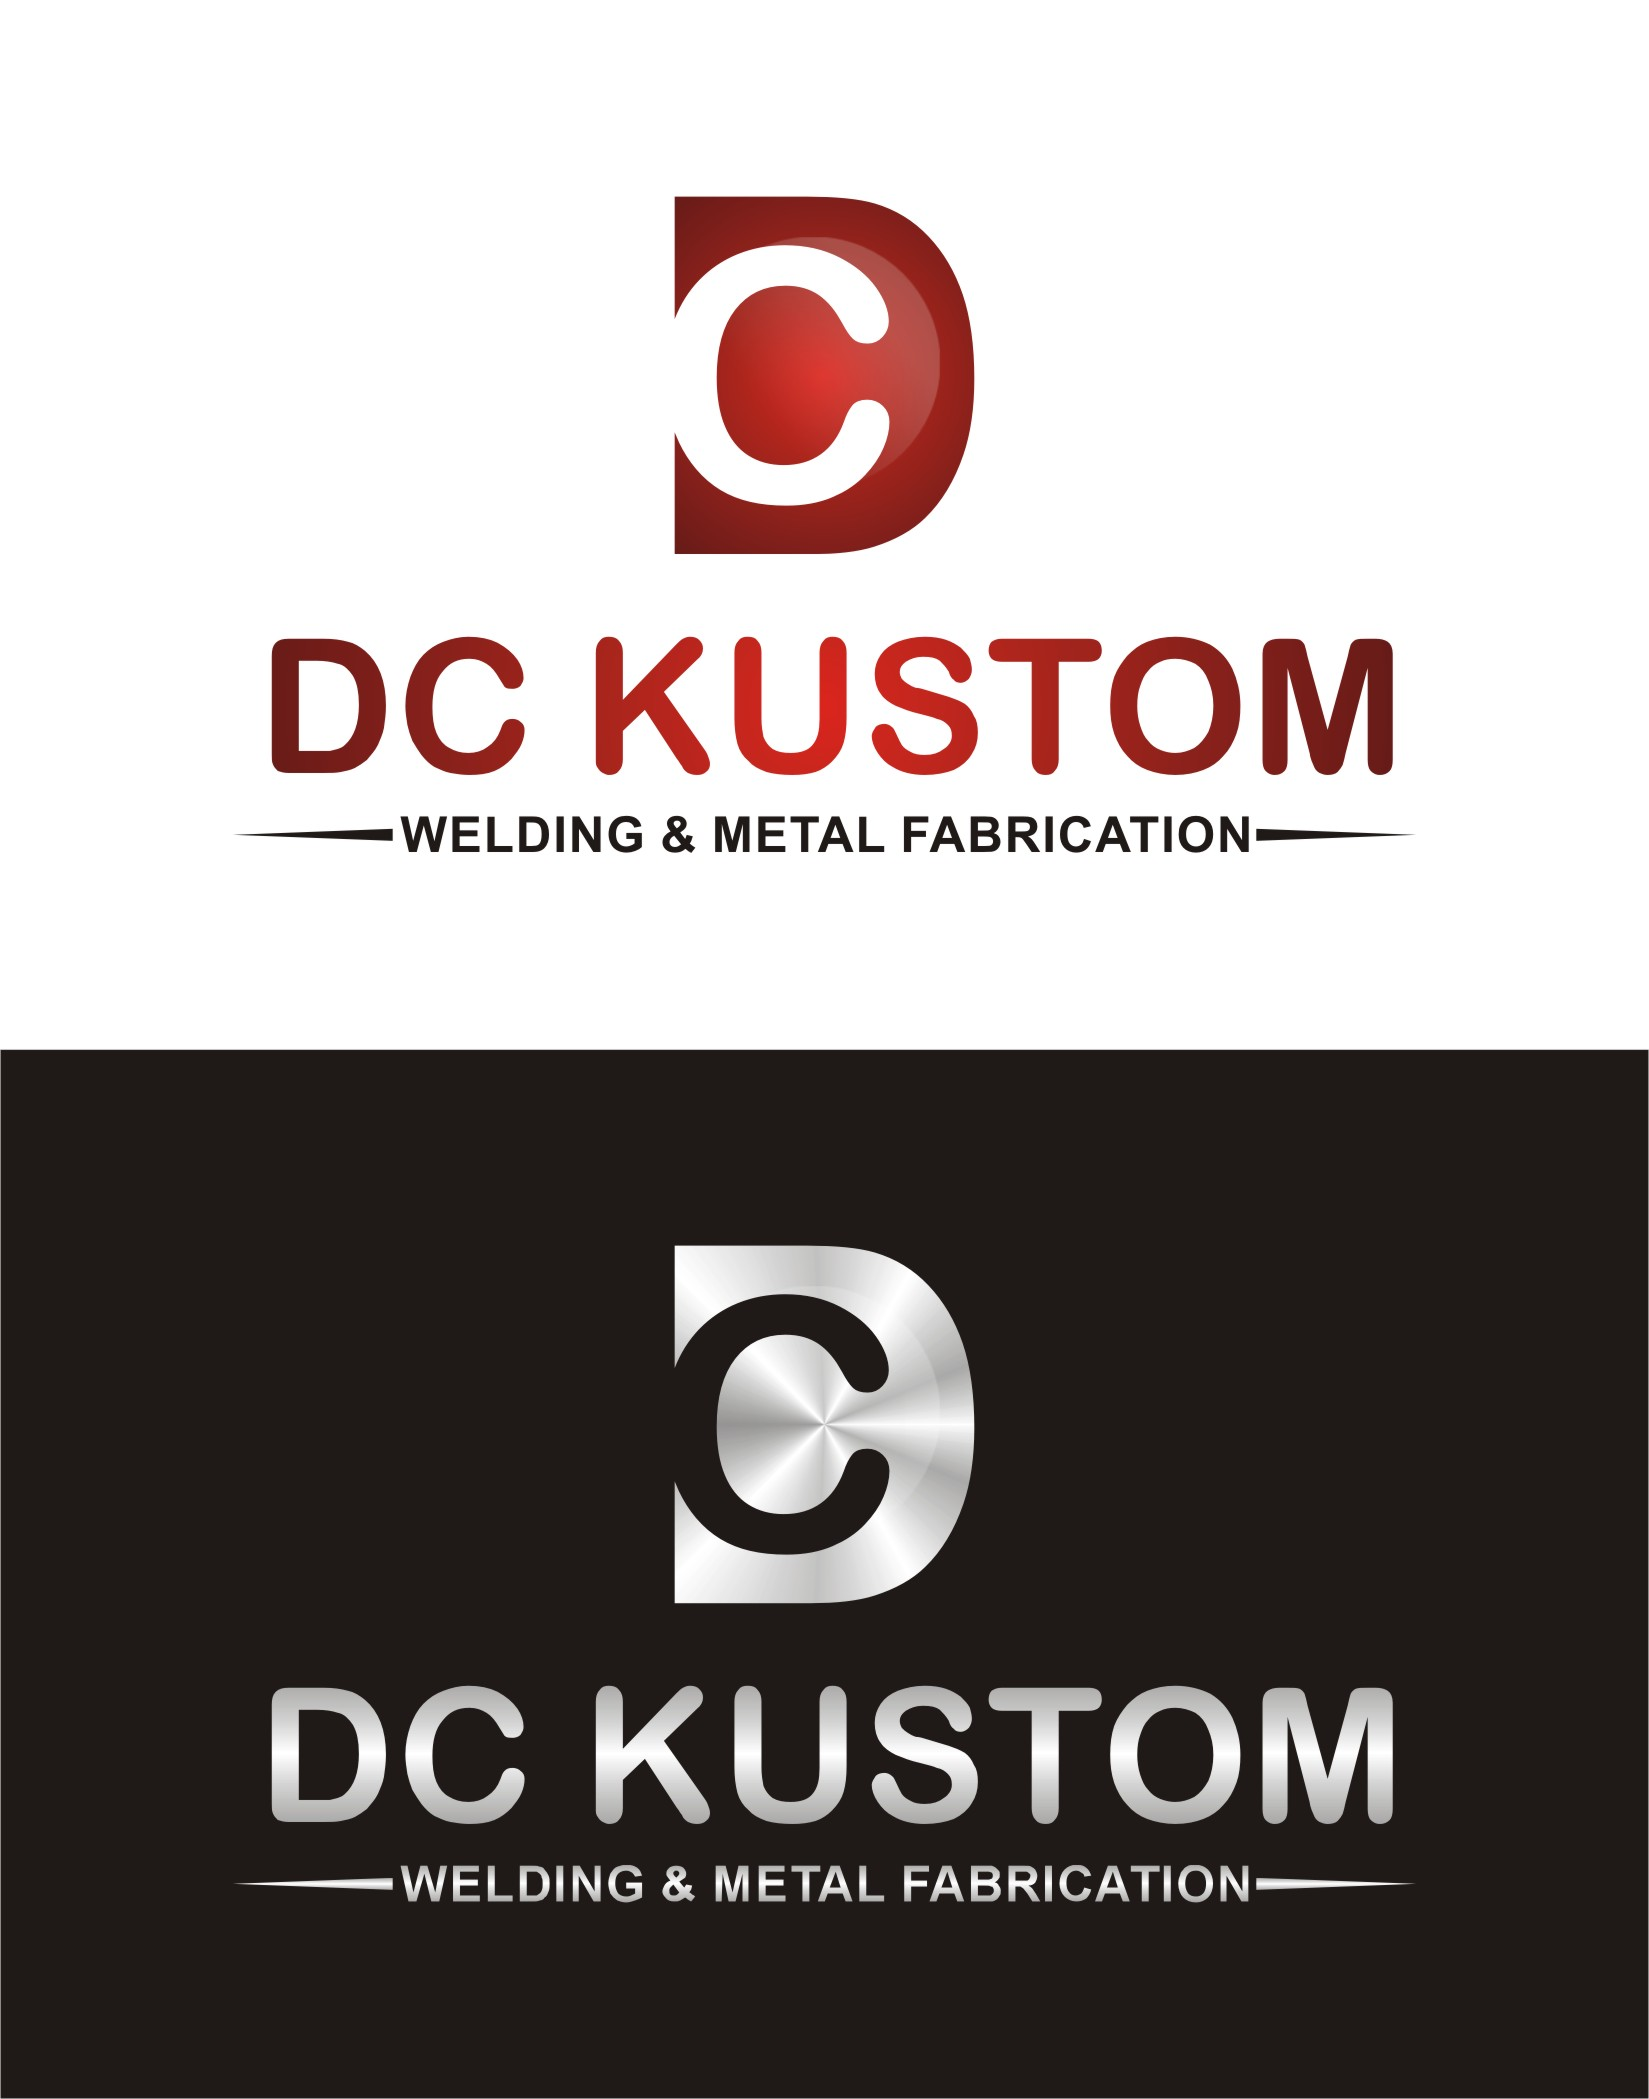 Logo Design by I graphics GRAPHICS - Entry No. 150 in the Logo Design Contest Imaginative Logo Design for DC KUSTOM WELDING & METAL FABRICATION.